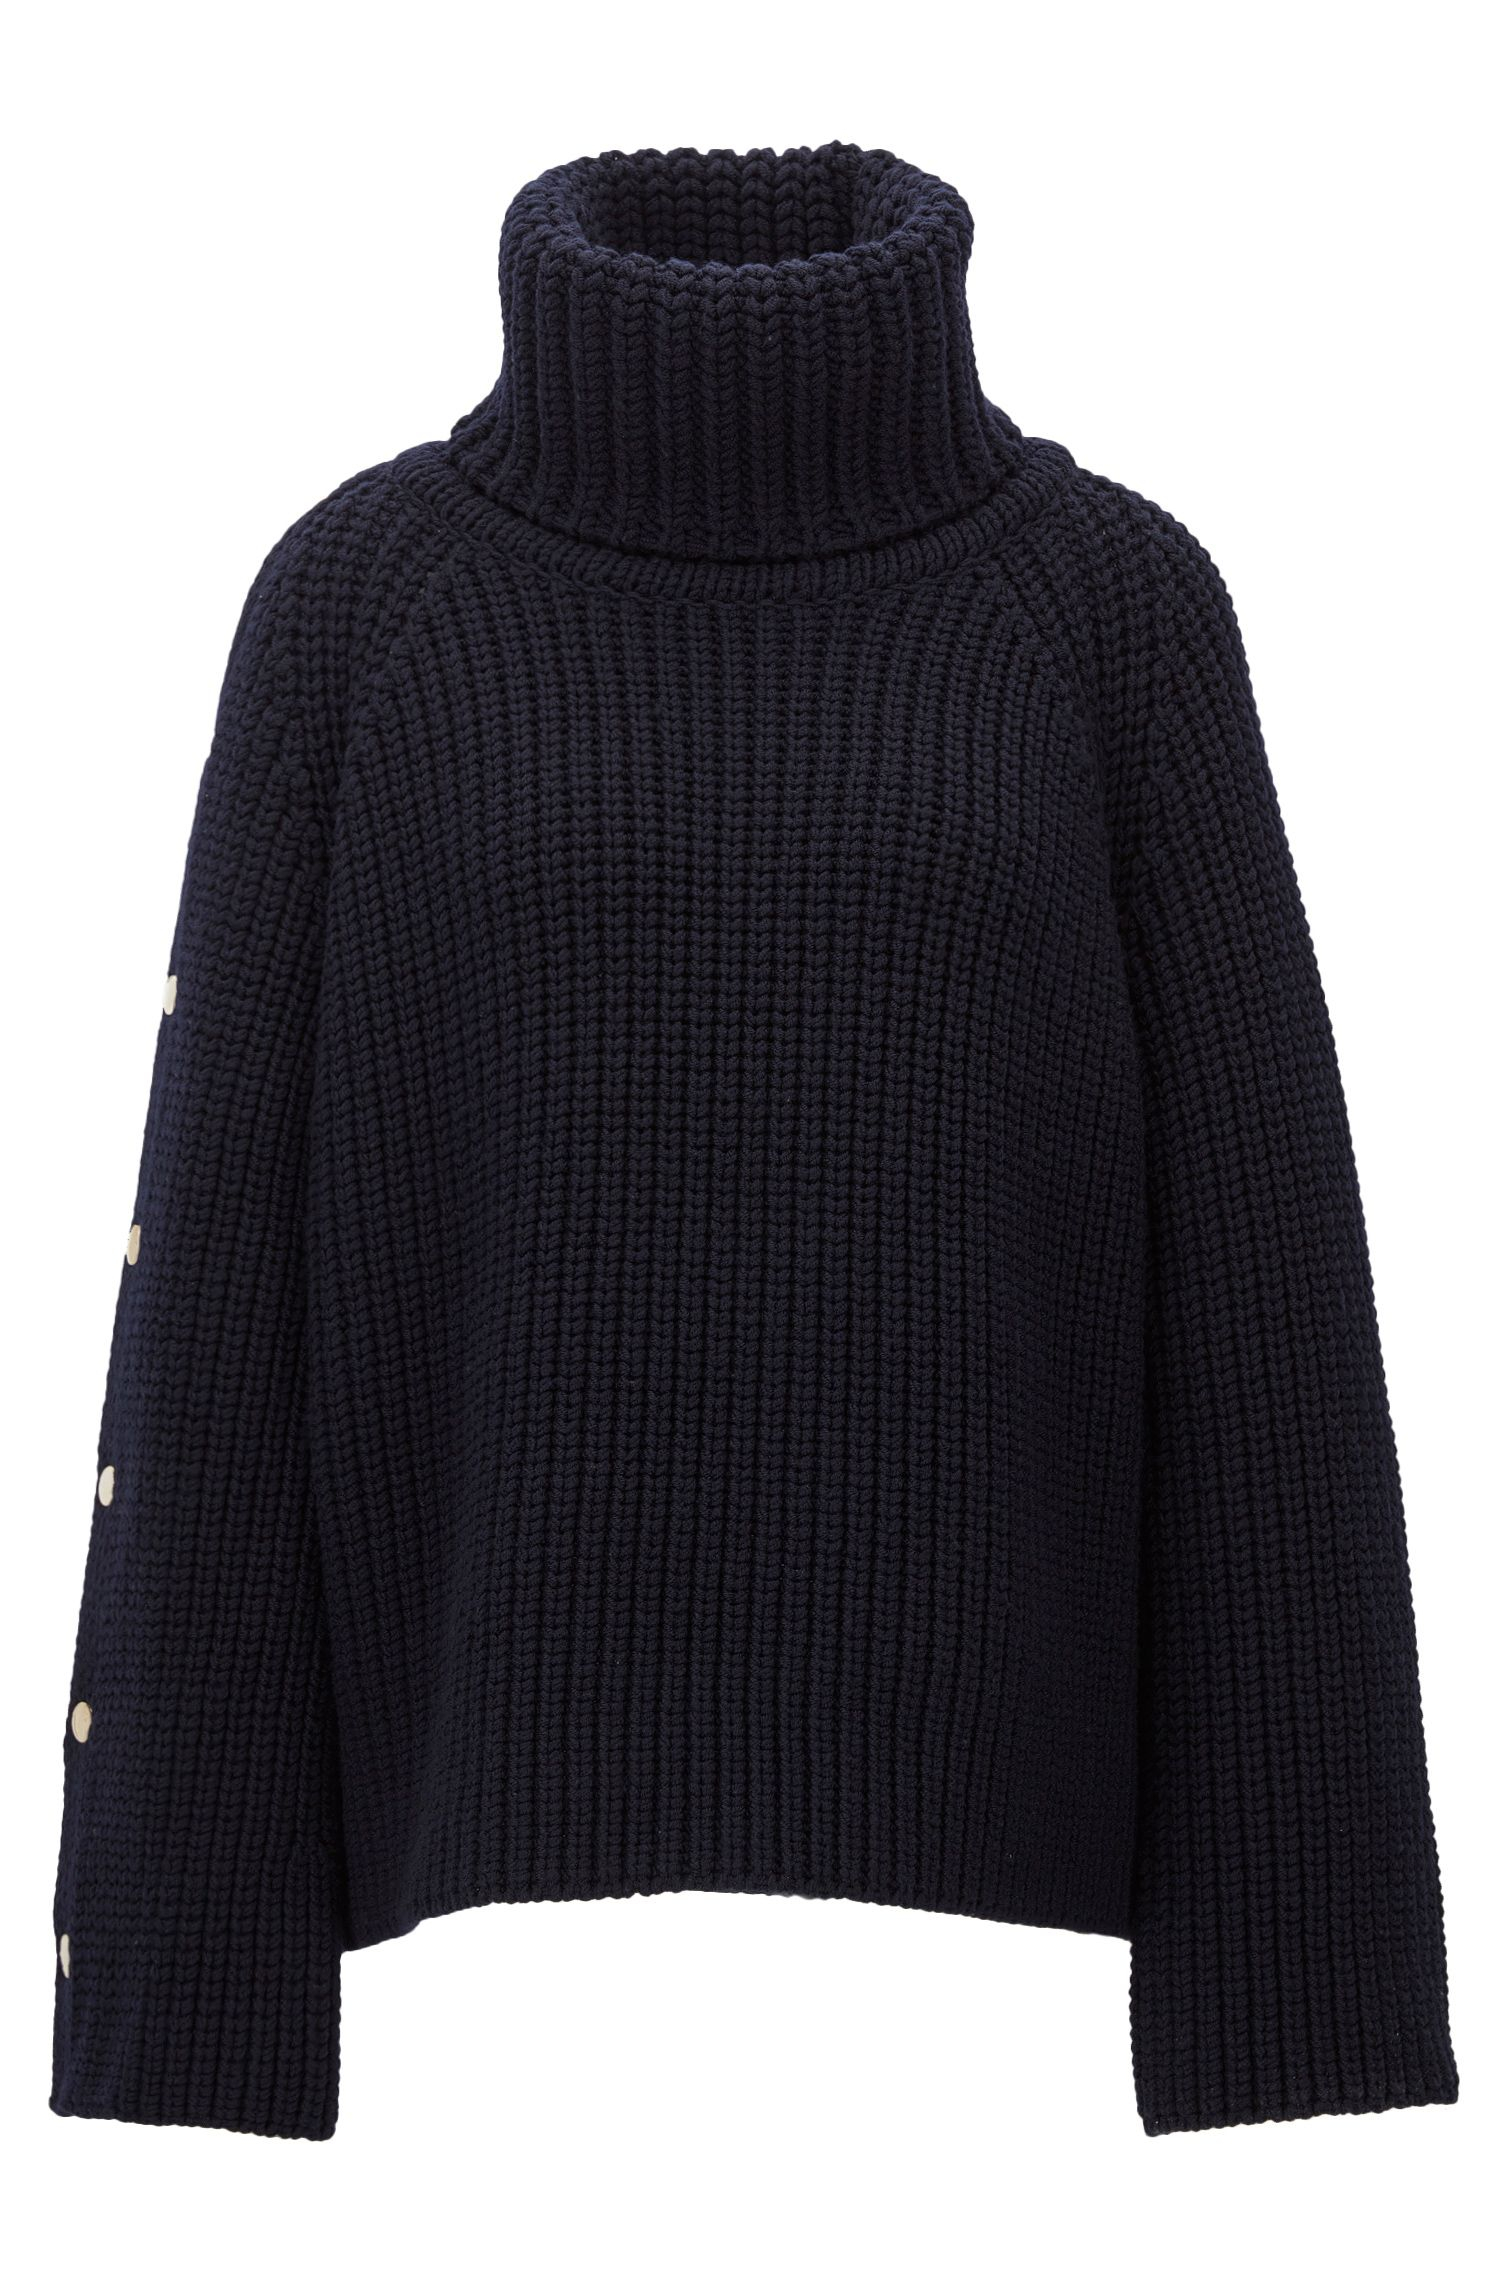 Virgin Wool Chunky Turtleneck Sweater | Feva